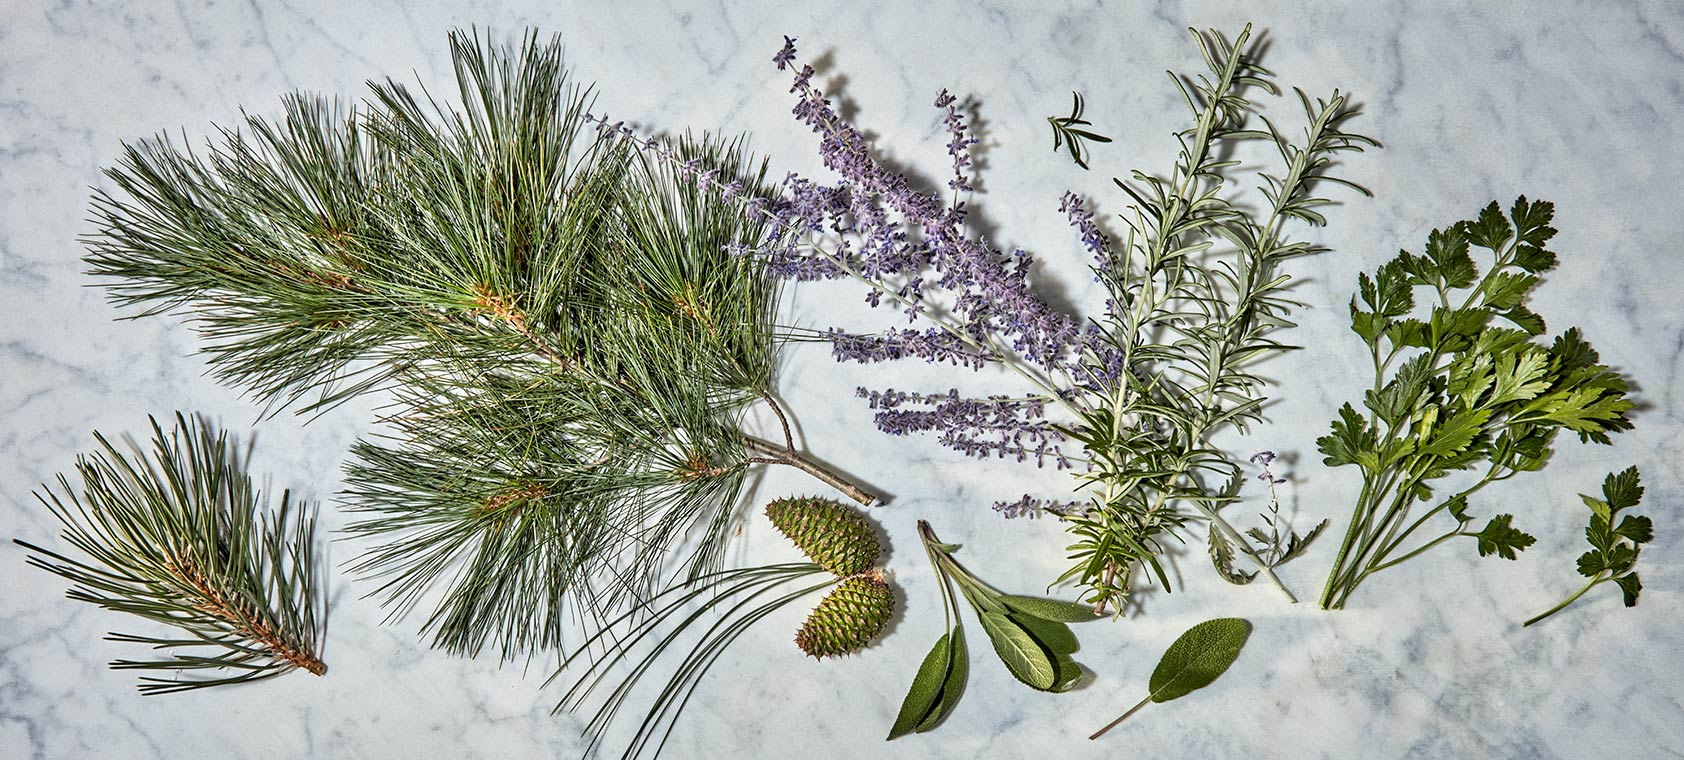 These are some of the plants that contain high levels of the terpene Pinene which has shown to be an anti-inflammatory.   They include; pine, sage, Russian sage, rosemary, and parsley.